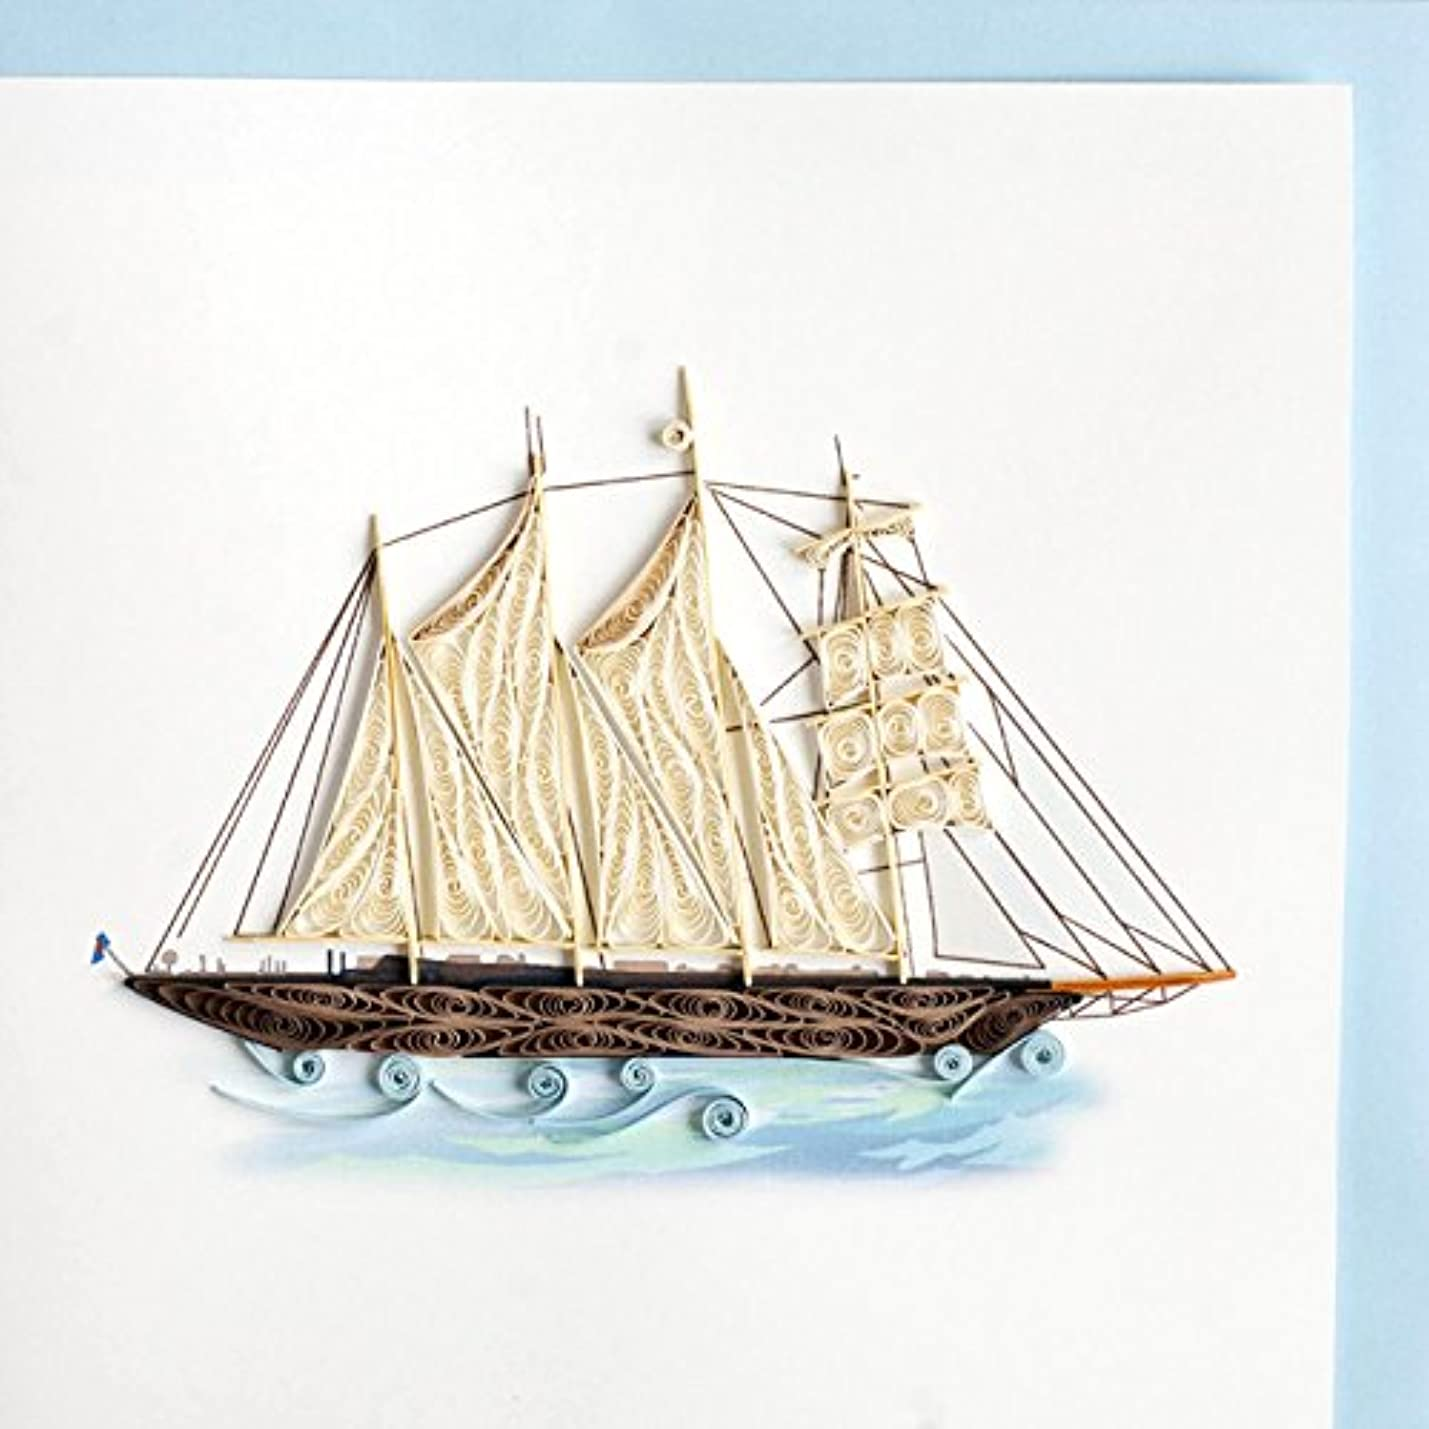 Origamo QU028?–?Greeting Card, Ship, Filigree of Paper, Origami pydvwadhkozvr876